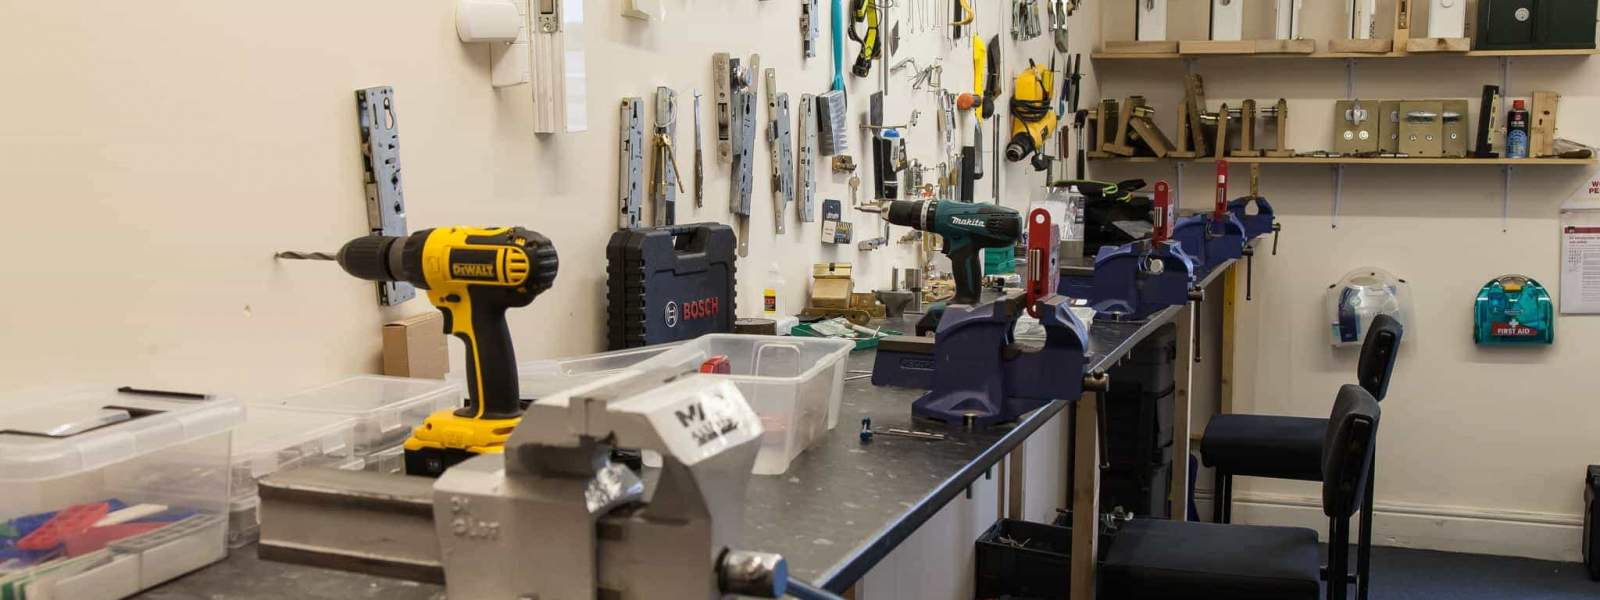 Locksmith Tools & Training Bench